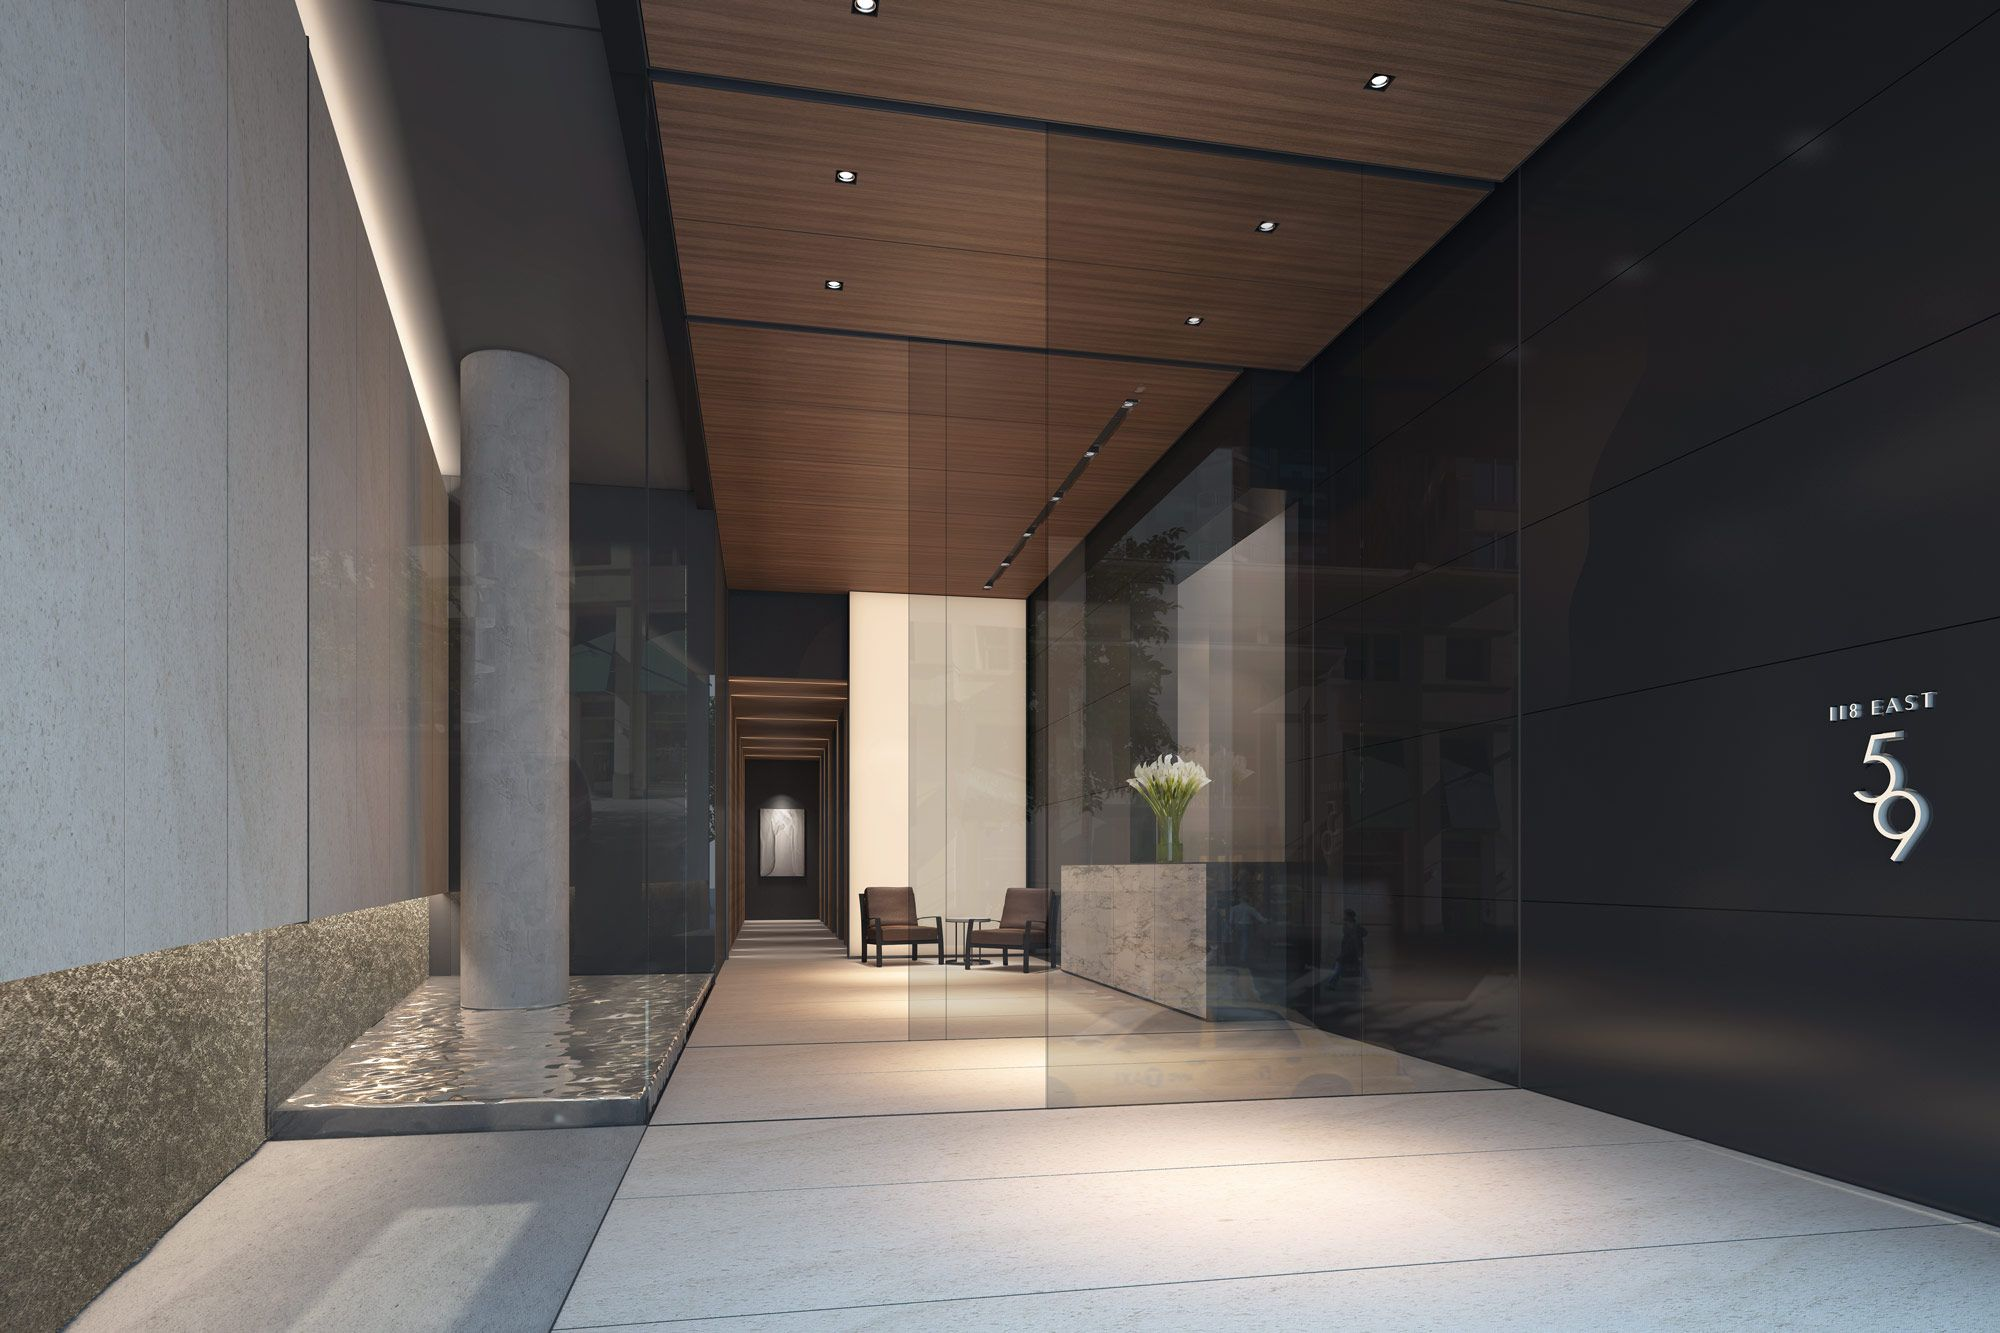 118 East 59th Euro Properties Rudd Family Billionaires Row NYC Construction